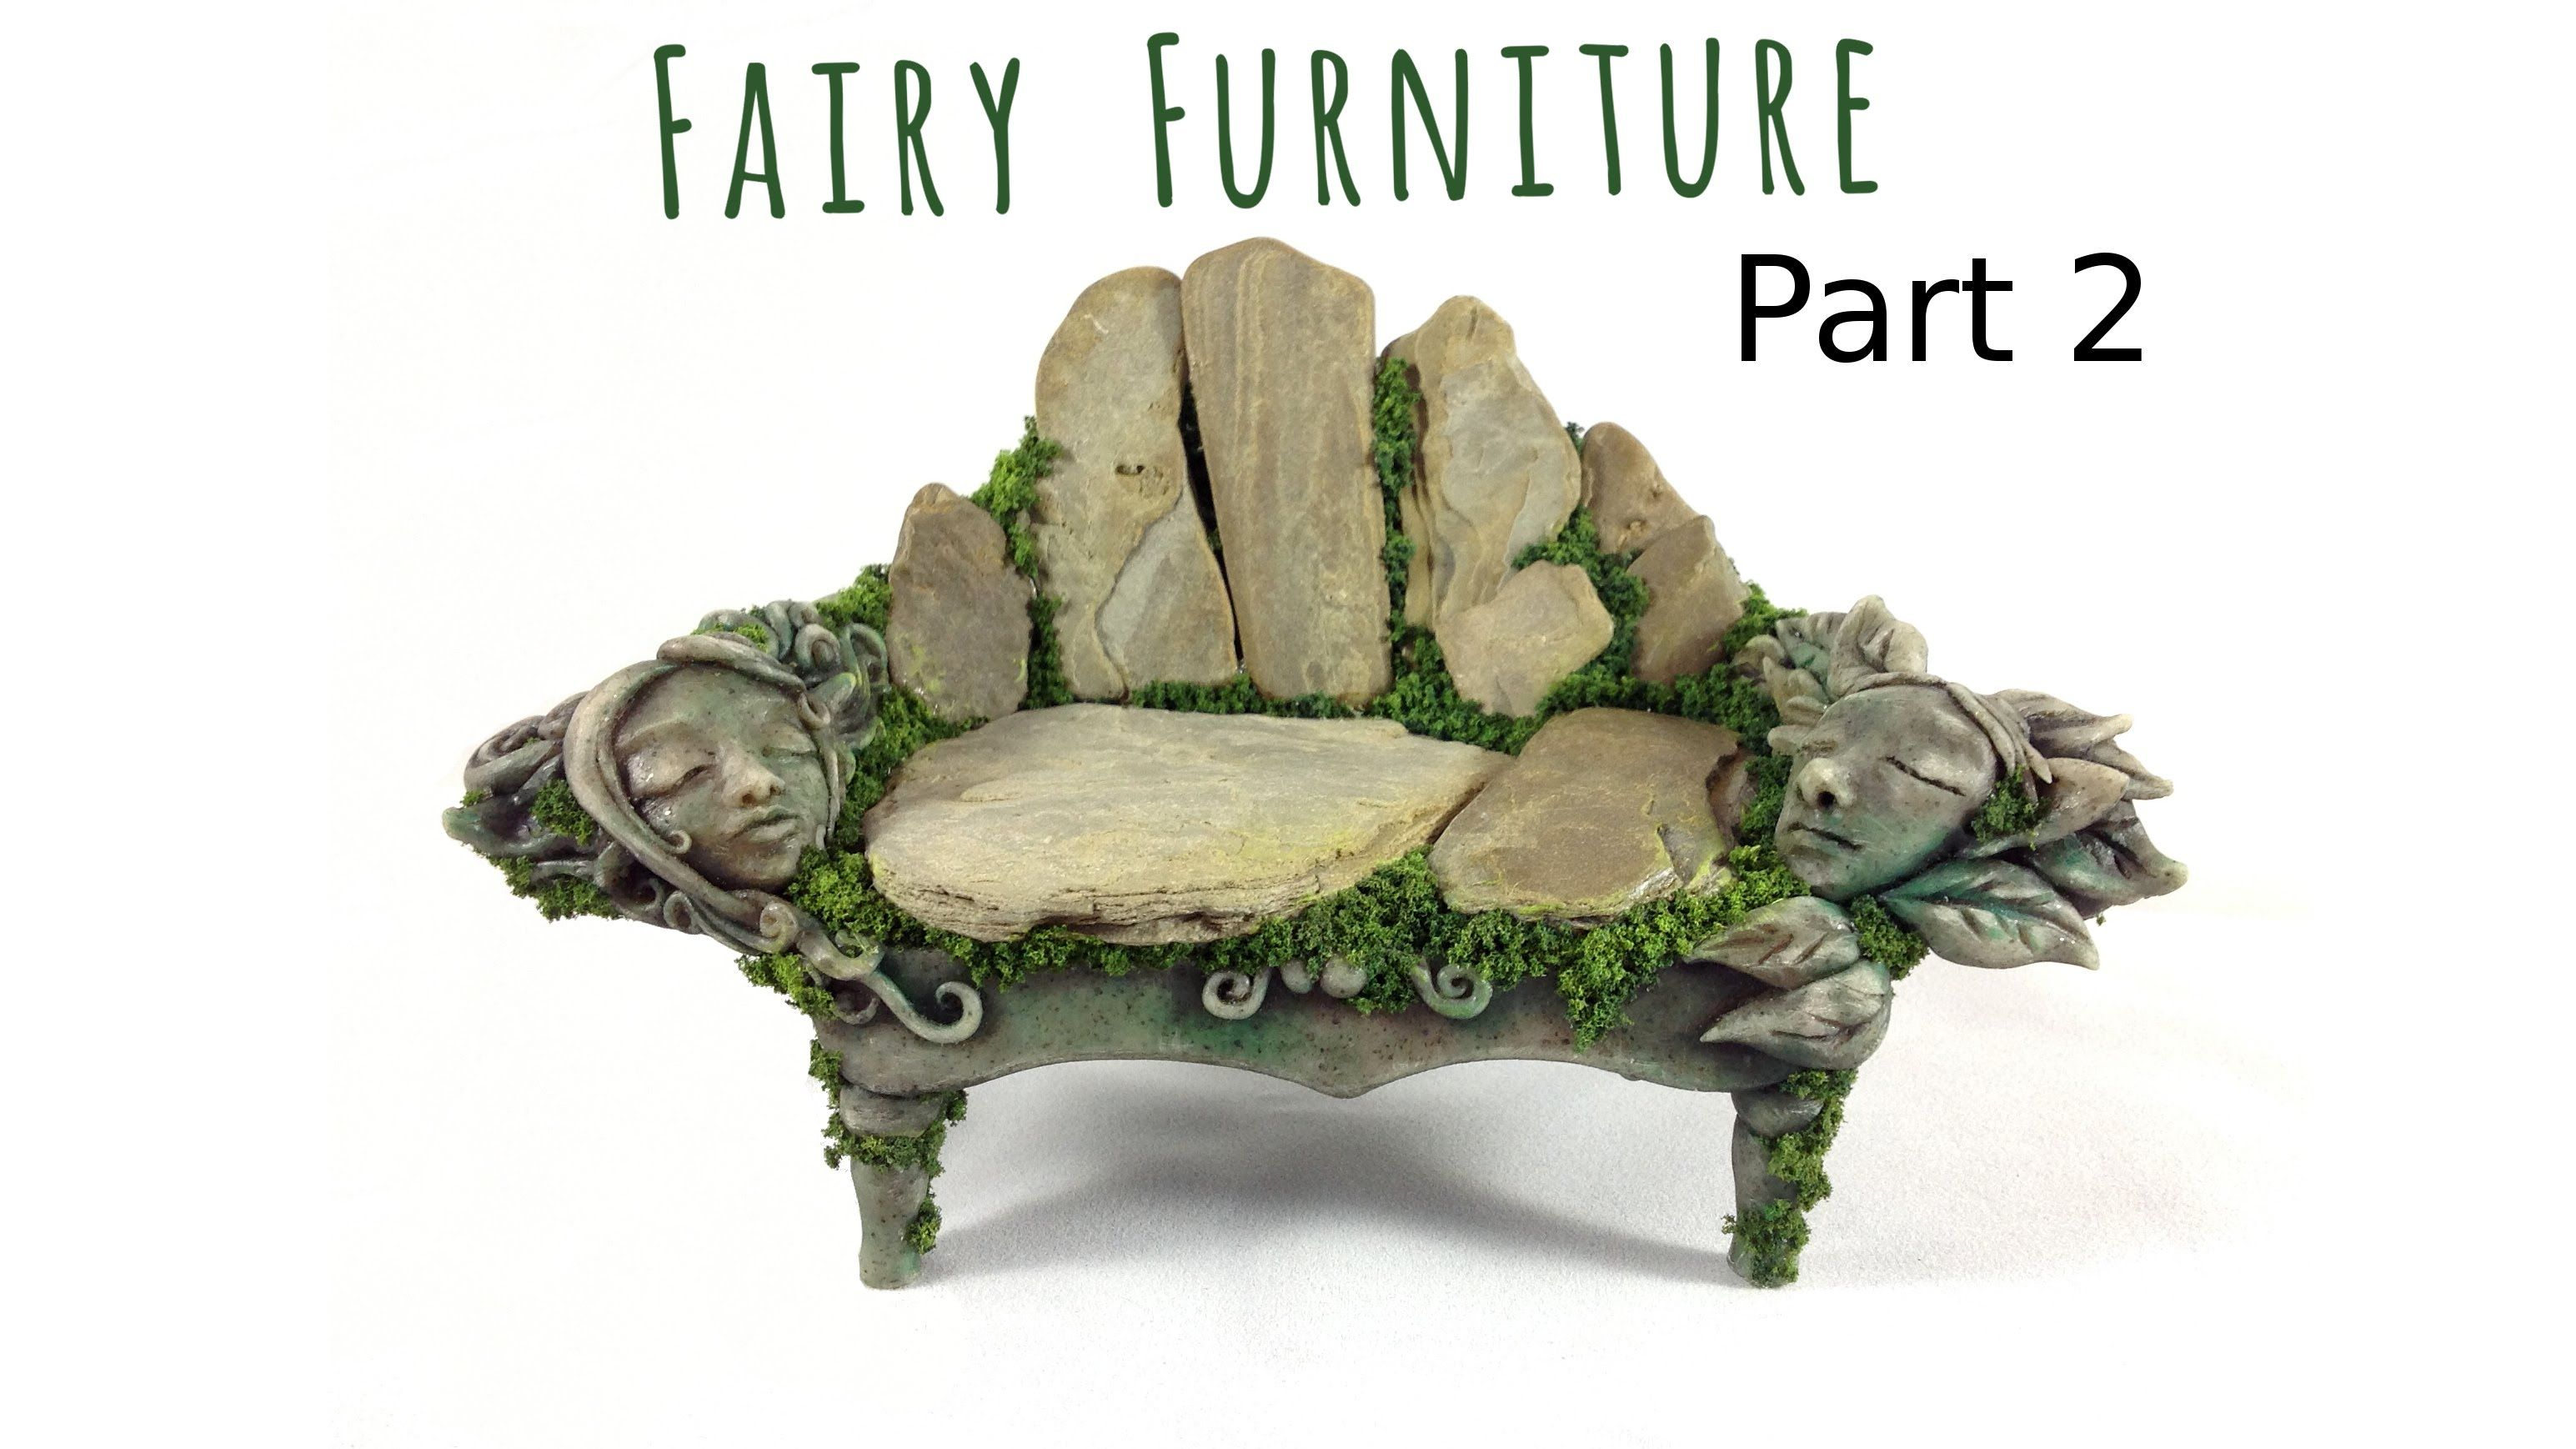 How To Make Fairy Furniture Out Of Clay Rocks Part 2 Diy Fairy Furni Fairy Garden Diy Fairy Furniture Fairy Garden Furniture